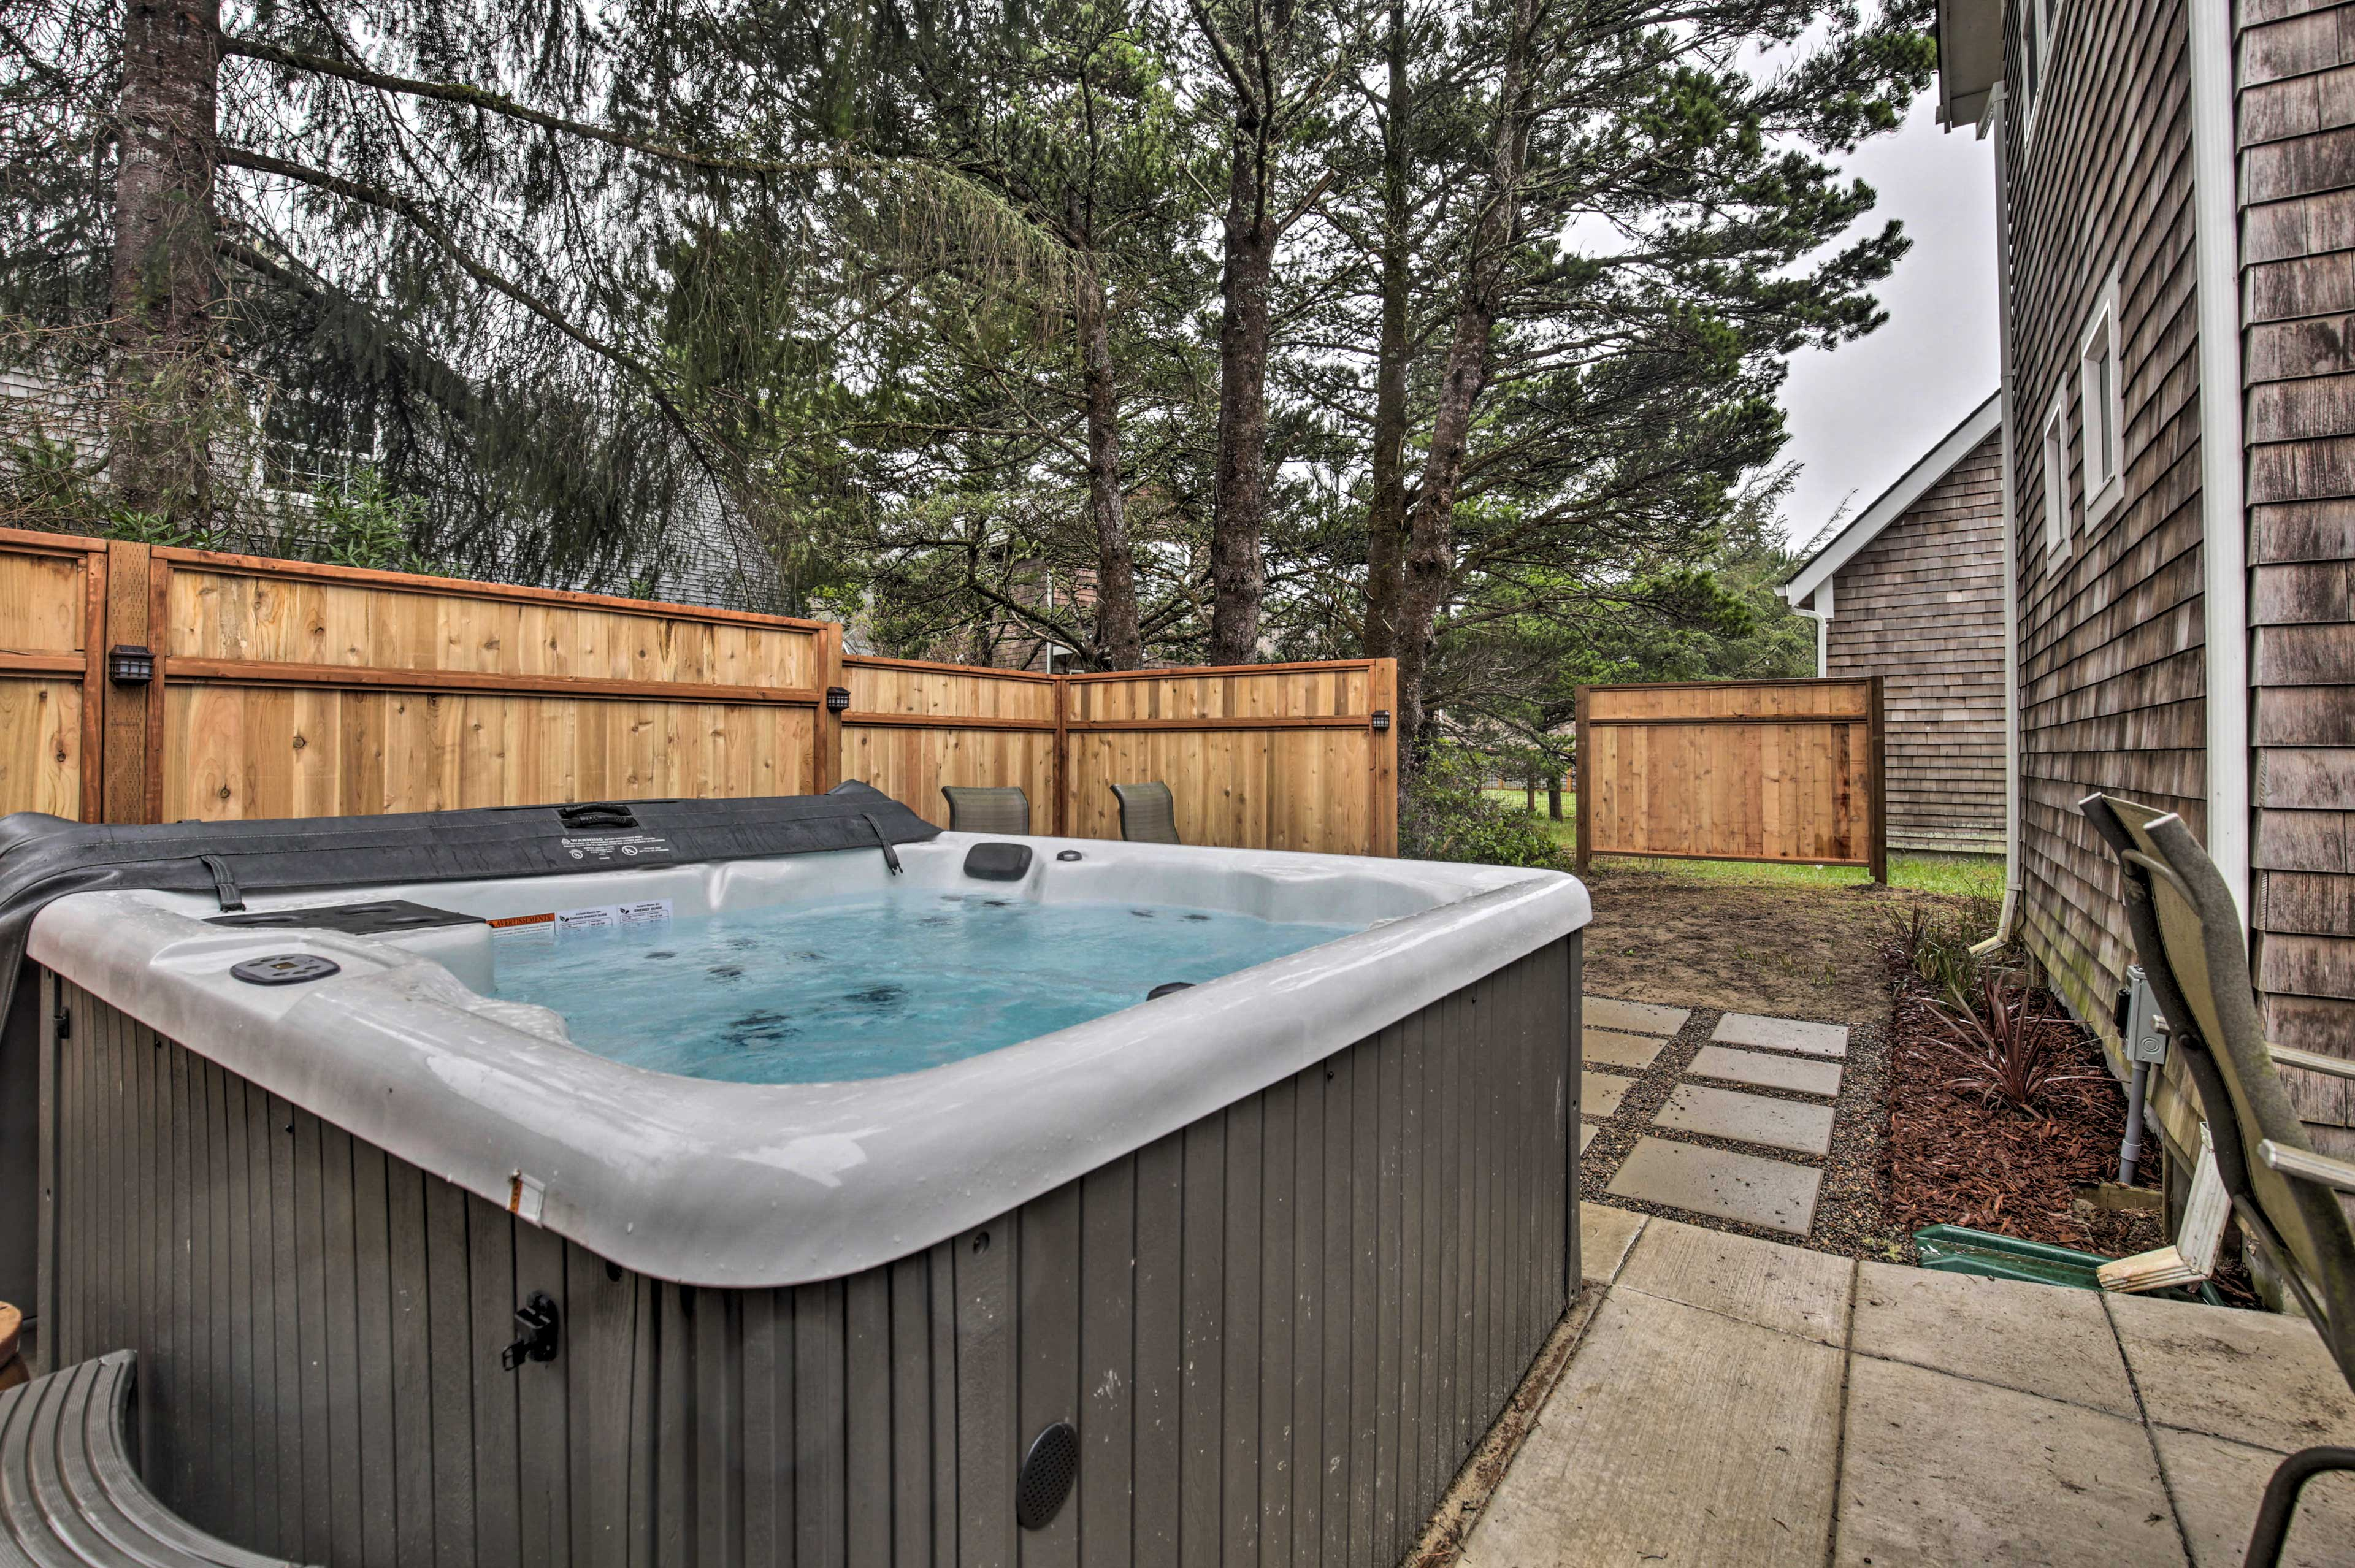 Soak those sore muscles in the hot tub.